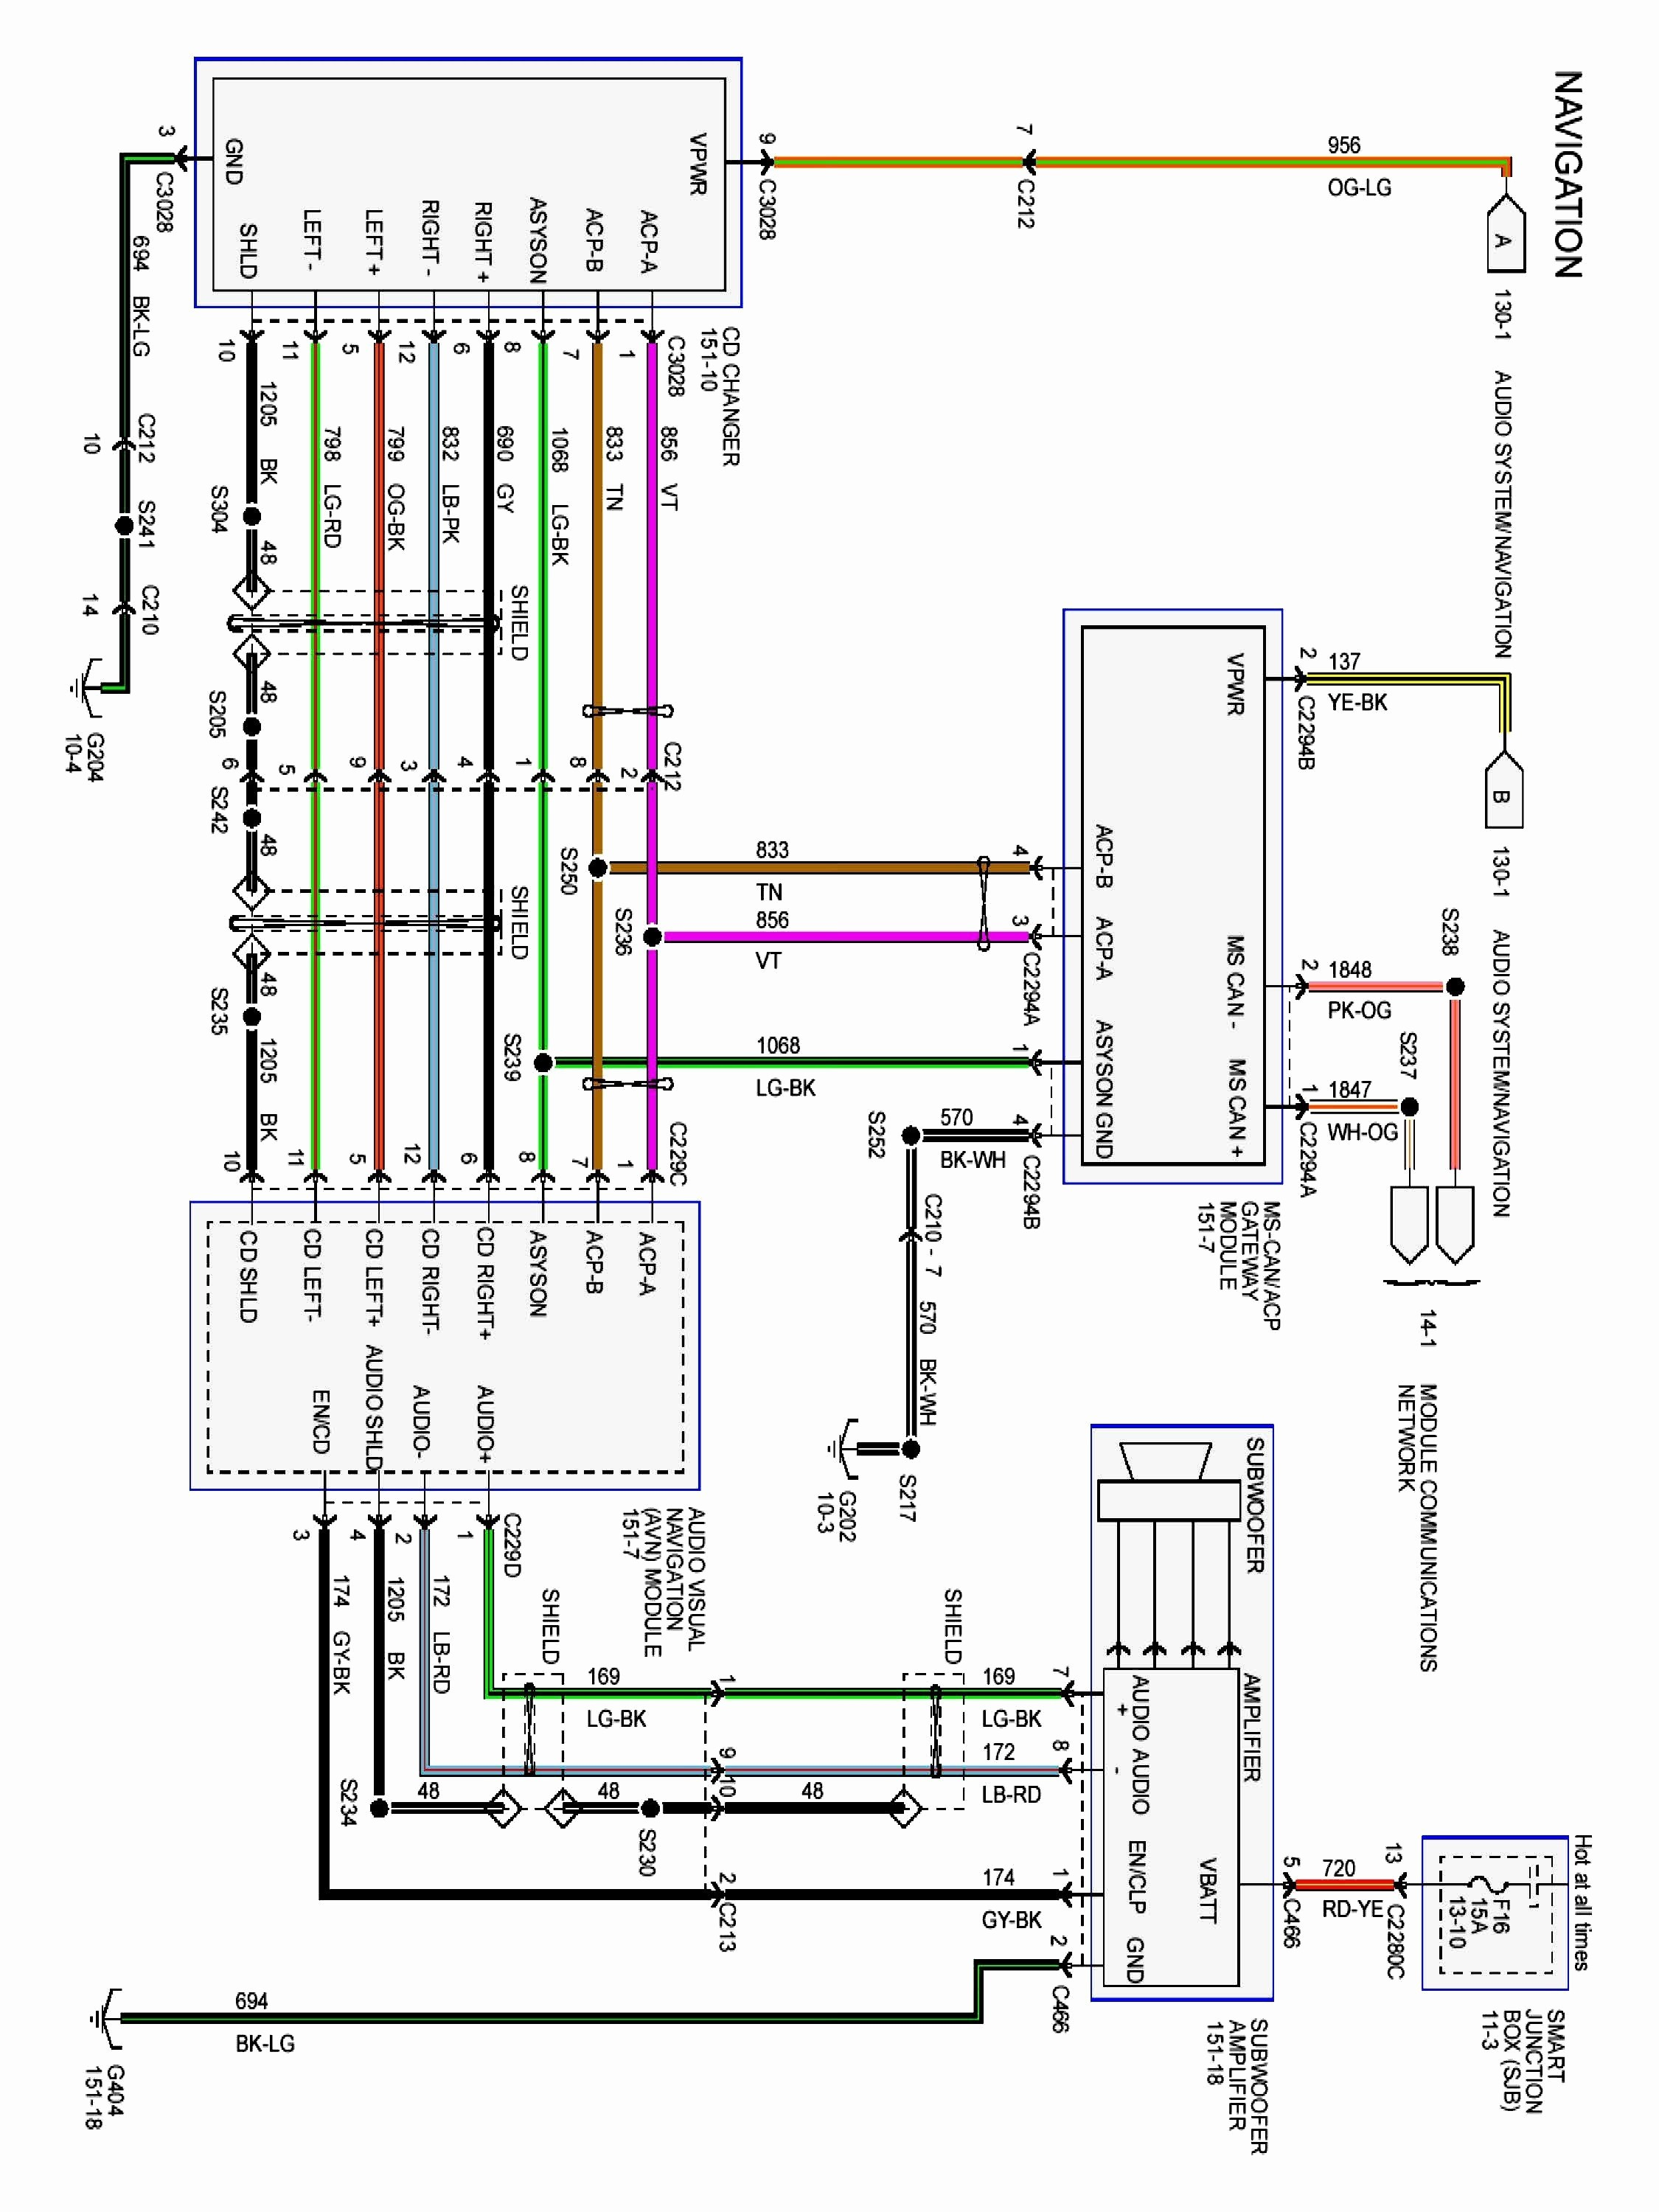 2000 Mercury Mountaineer Engine Diagram 1998 Mercury Mountaineer Wiring Diagram Schematics Wiring Diagrams • Of 2000 Mercury Mountaineer Engine Diagram